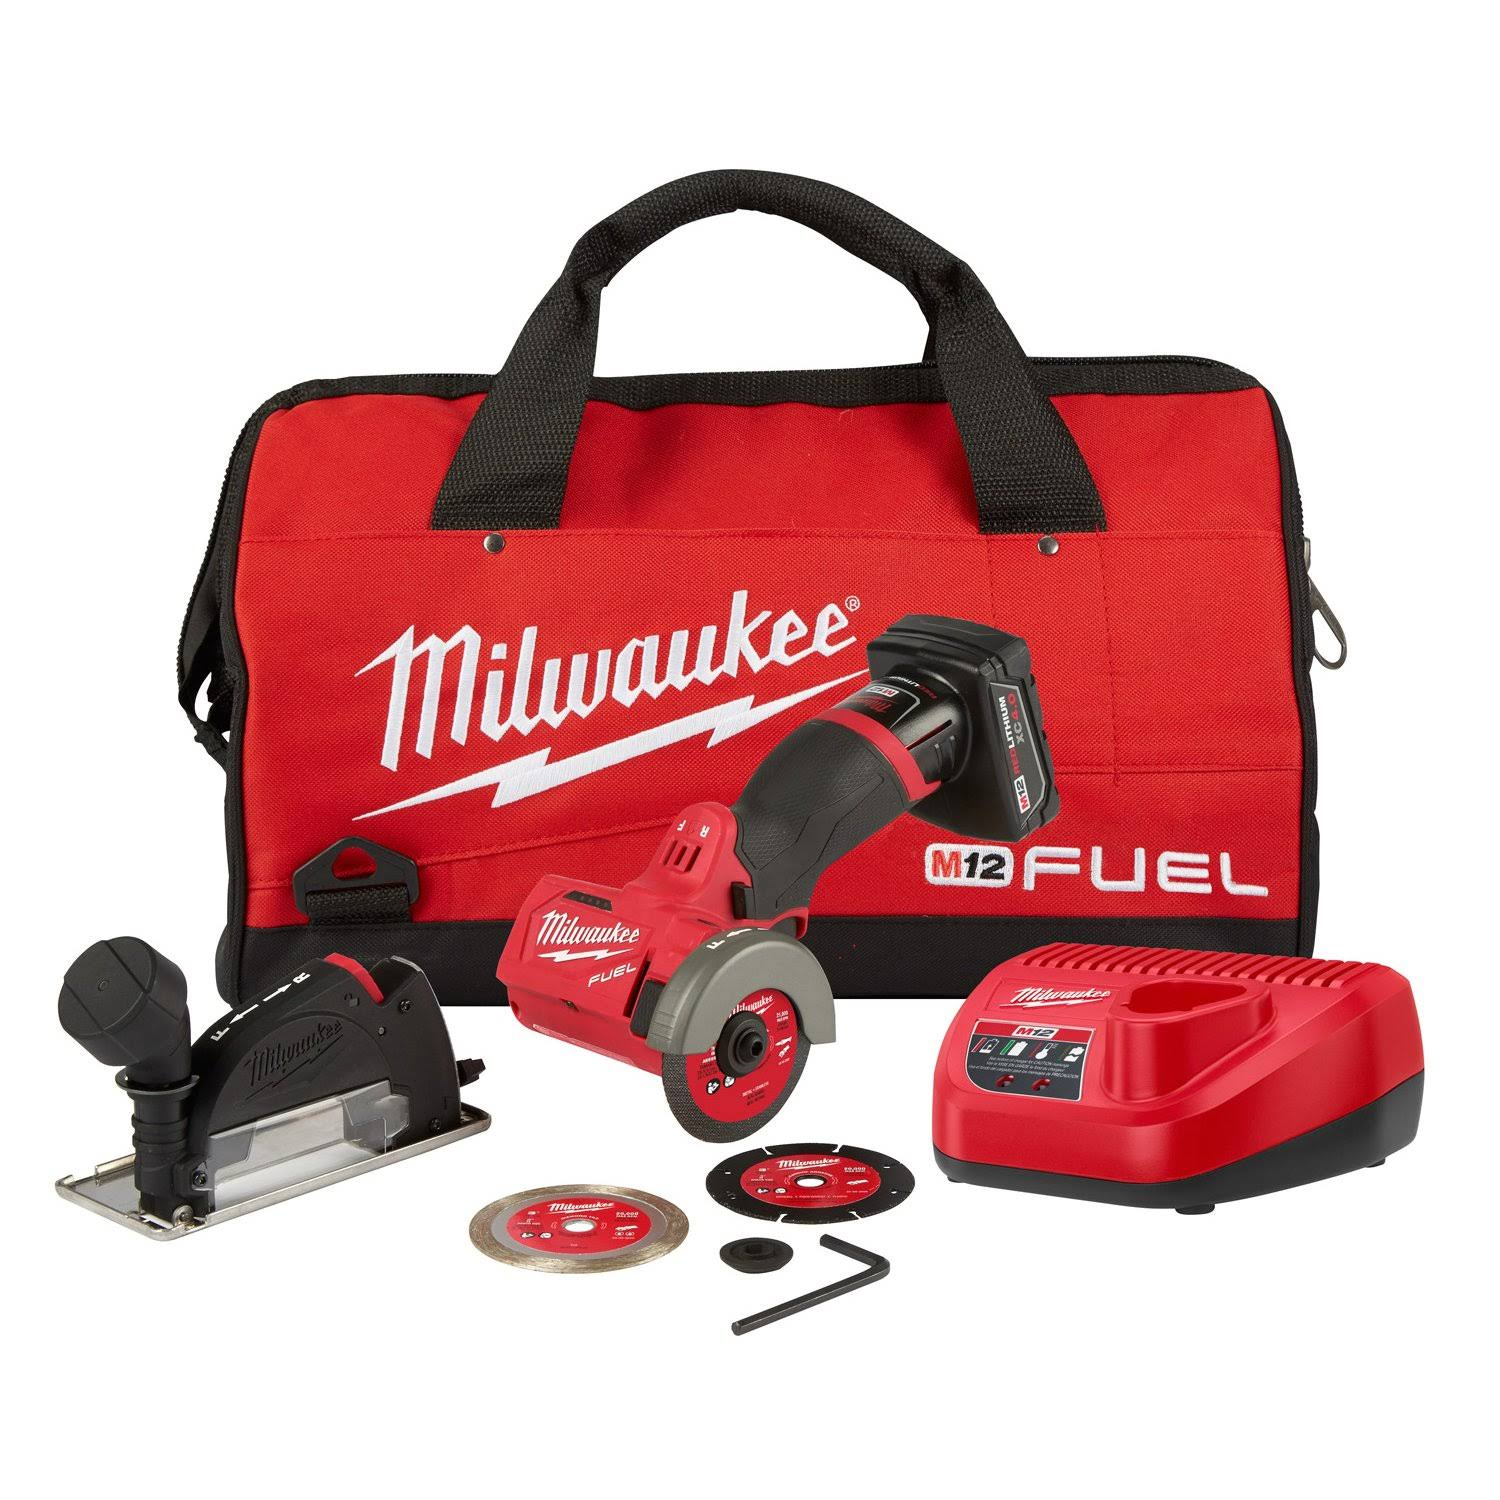 Milwaukee 252221XC M12 FUEL Lithium Ion Brushless Cordless Cut Off Tool Kit - 12V